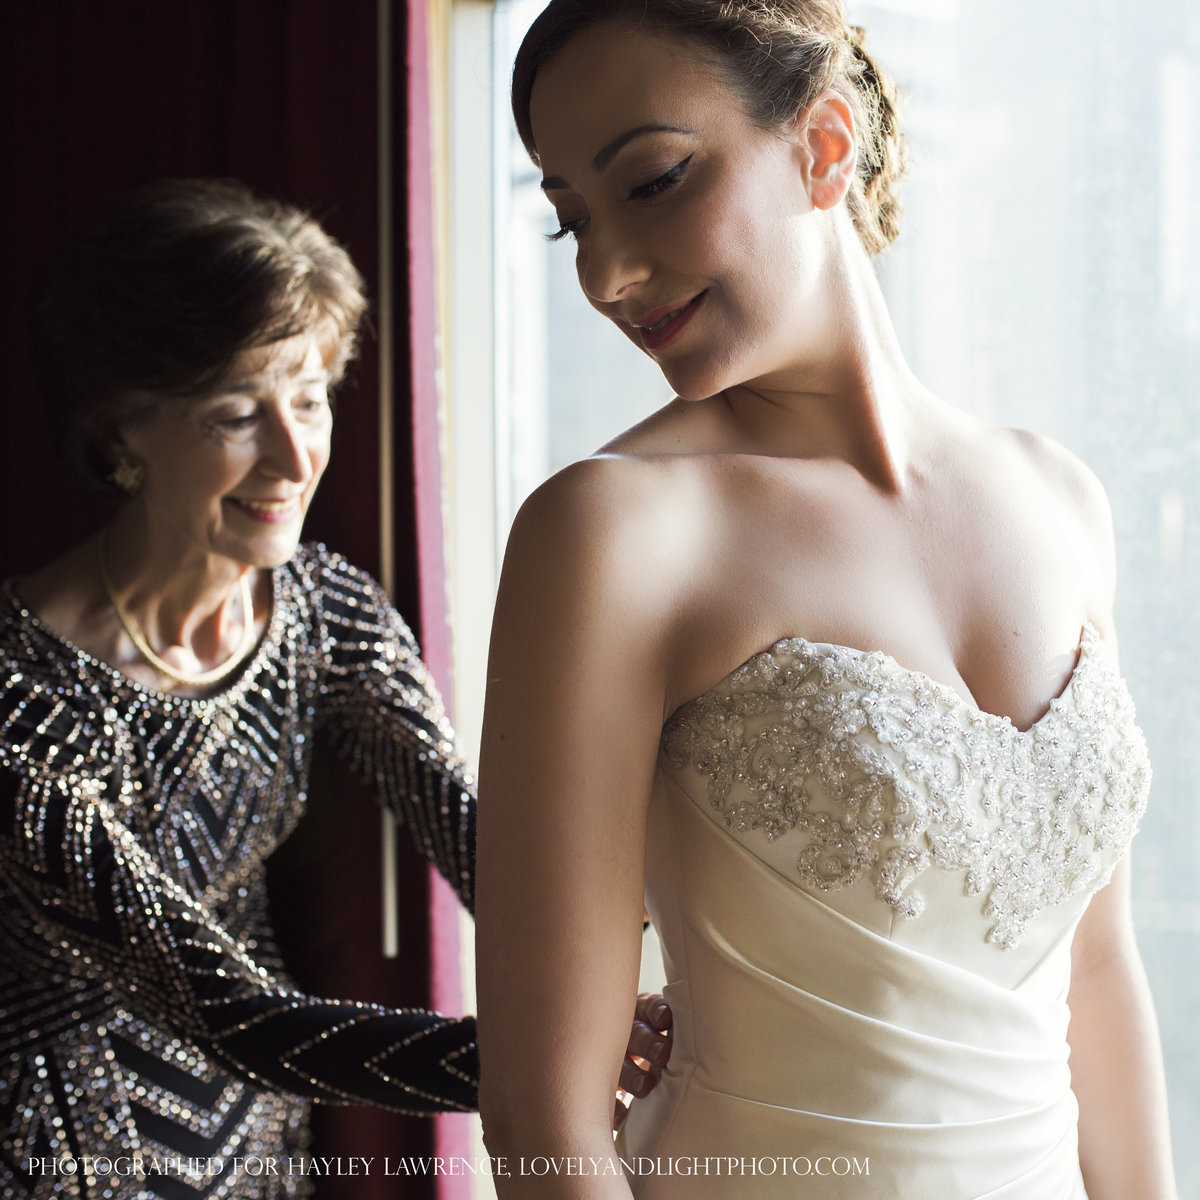 charlotte wedding photographer jamie lucido captures a beautiful moment at the hotel as the bride puts on her dress and her mother zips it from behind